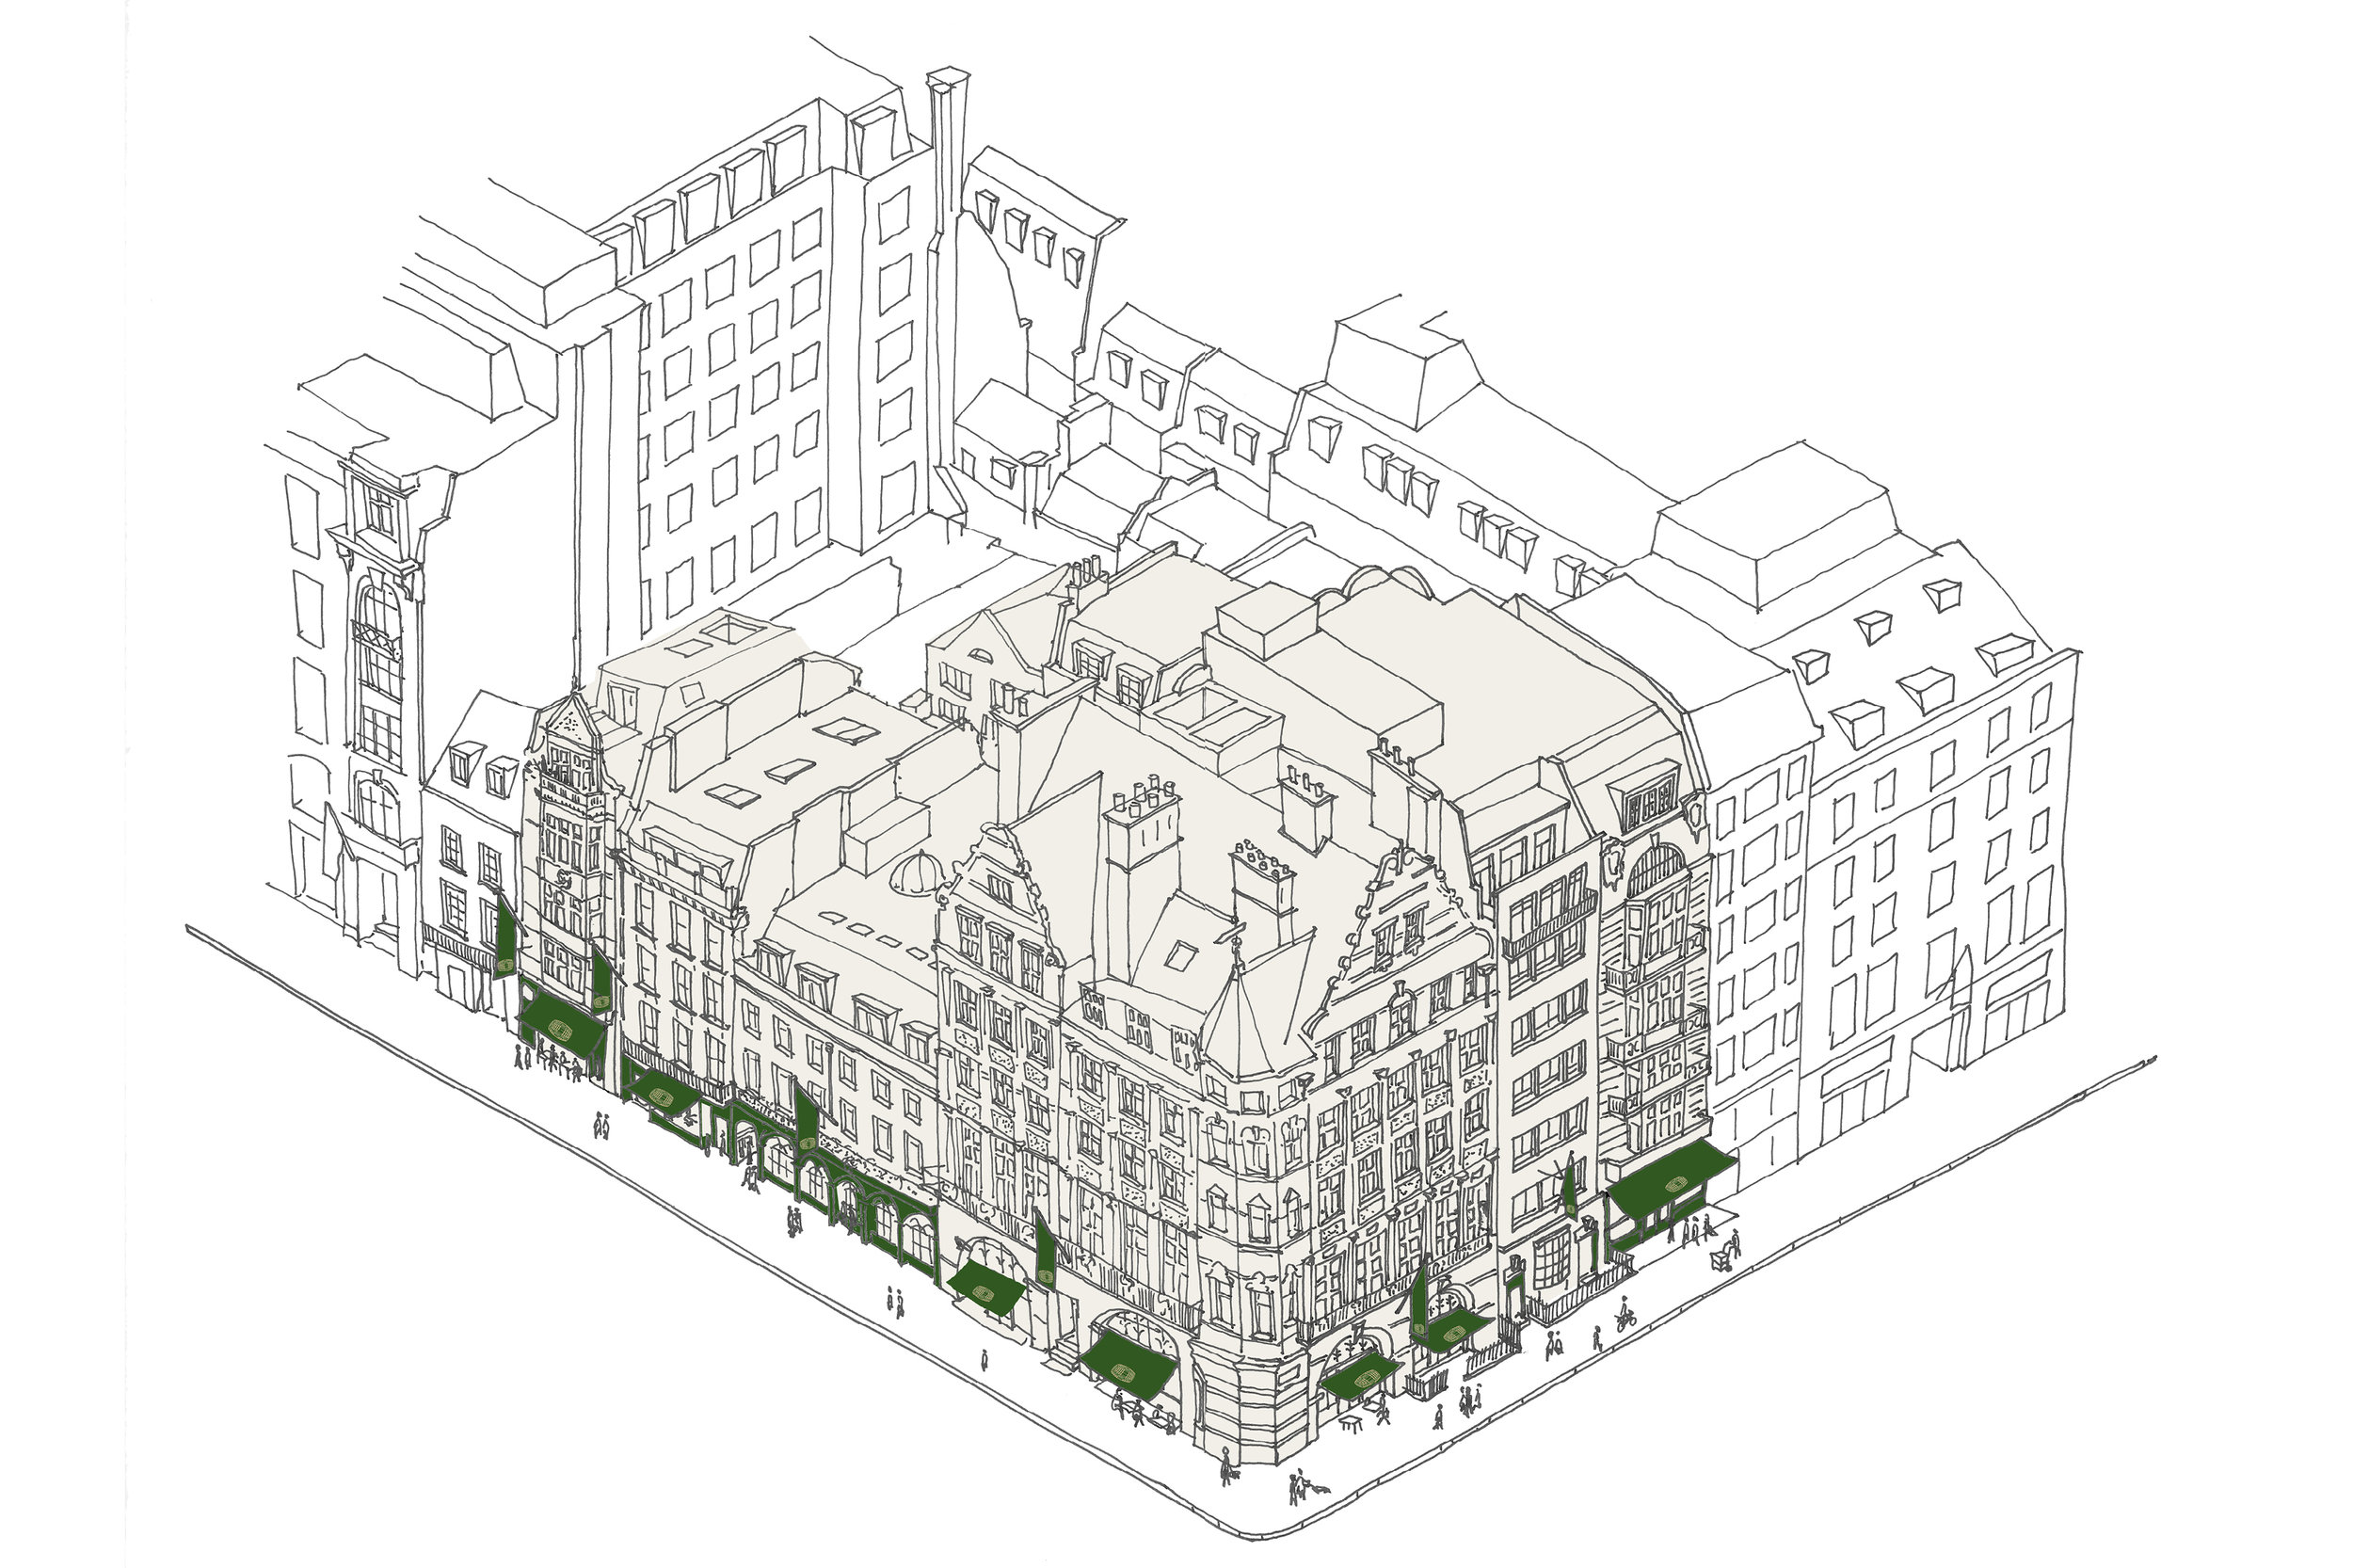 Sketch of Berry Bros. and Rudd Concept Property Strategy on the Corner of St James's and Pall Mall